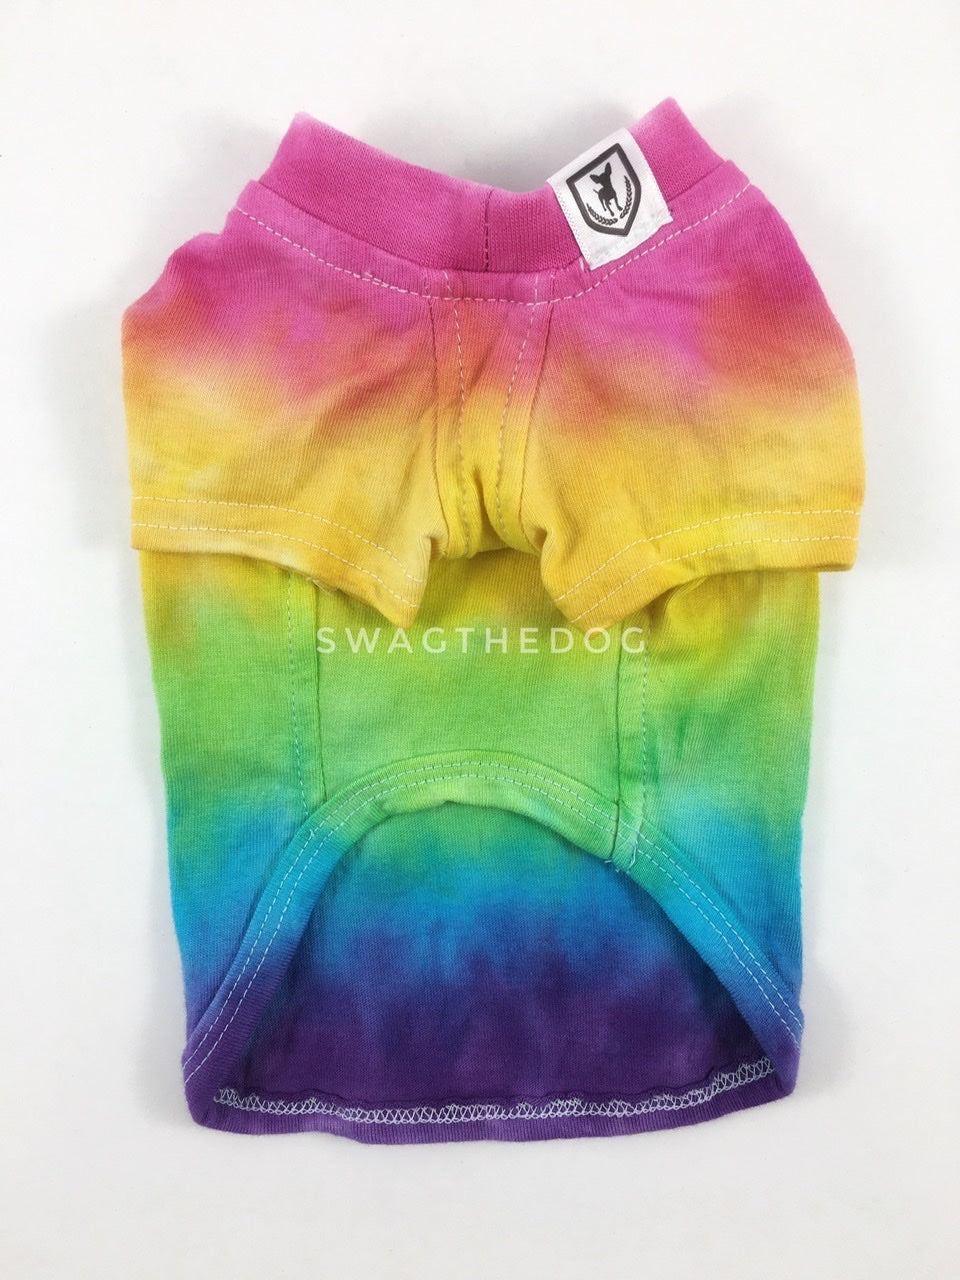 Swagadelic Pride Ombré Tie Dye Tee - Product front view. The hand tie-dyed tee with Pink, Yellow, Green, Sky Blue and Purple